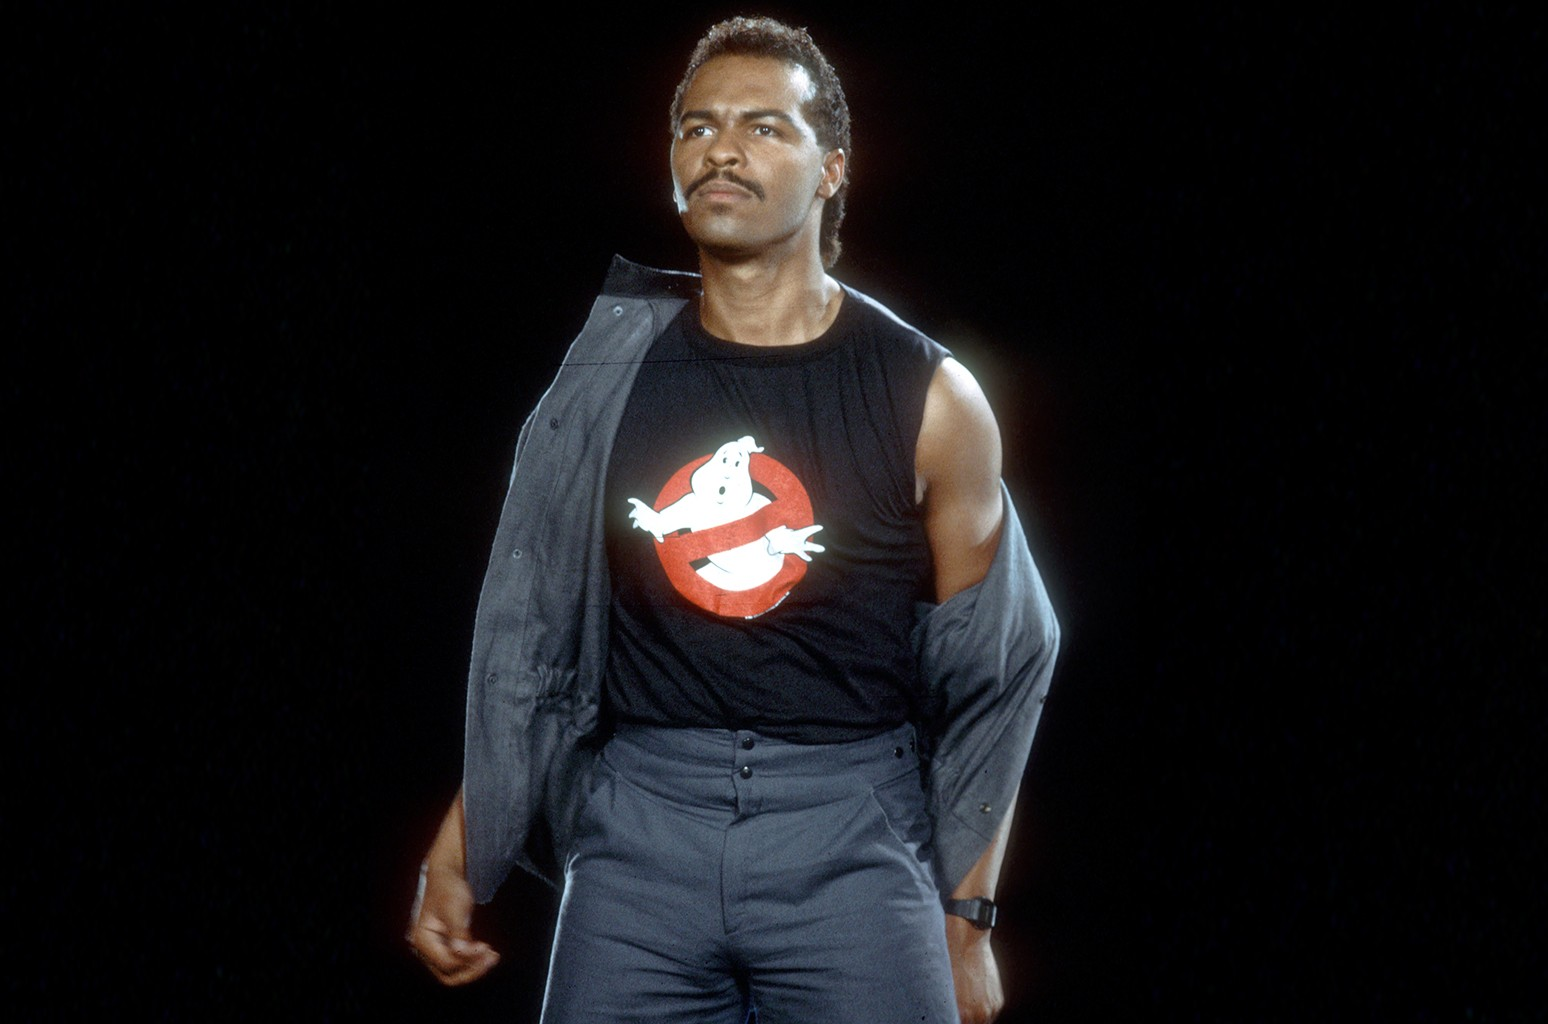 Ray Parker Jr. photographed in the 1980s.